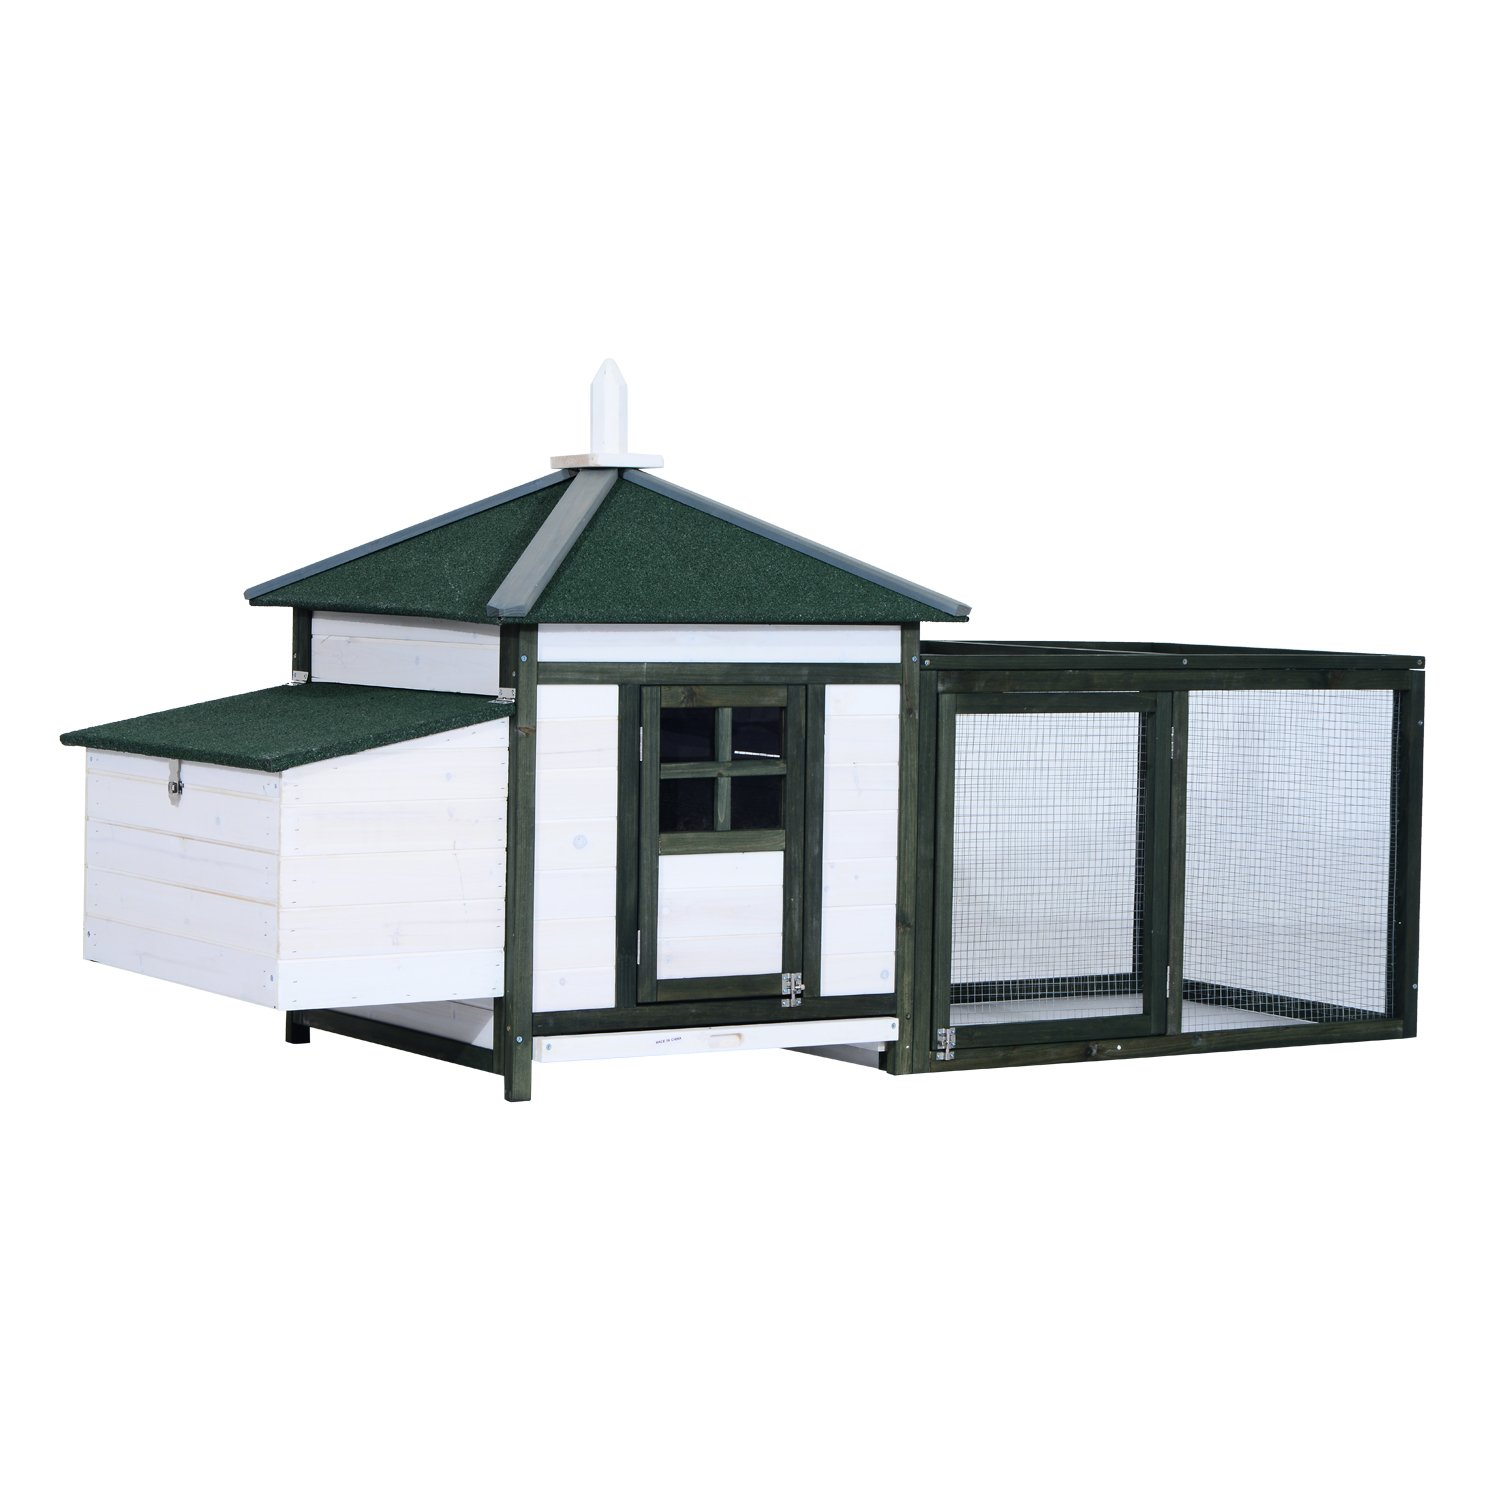 PawHut Chicken Coop Wooden House Large Backyard with Nestbox